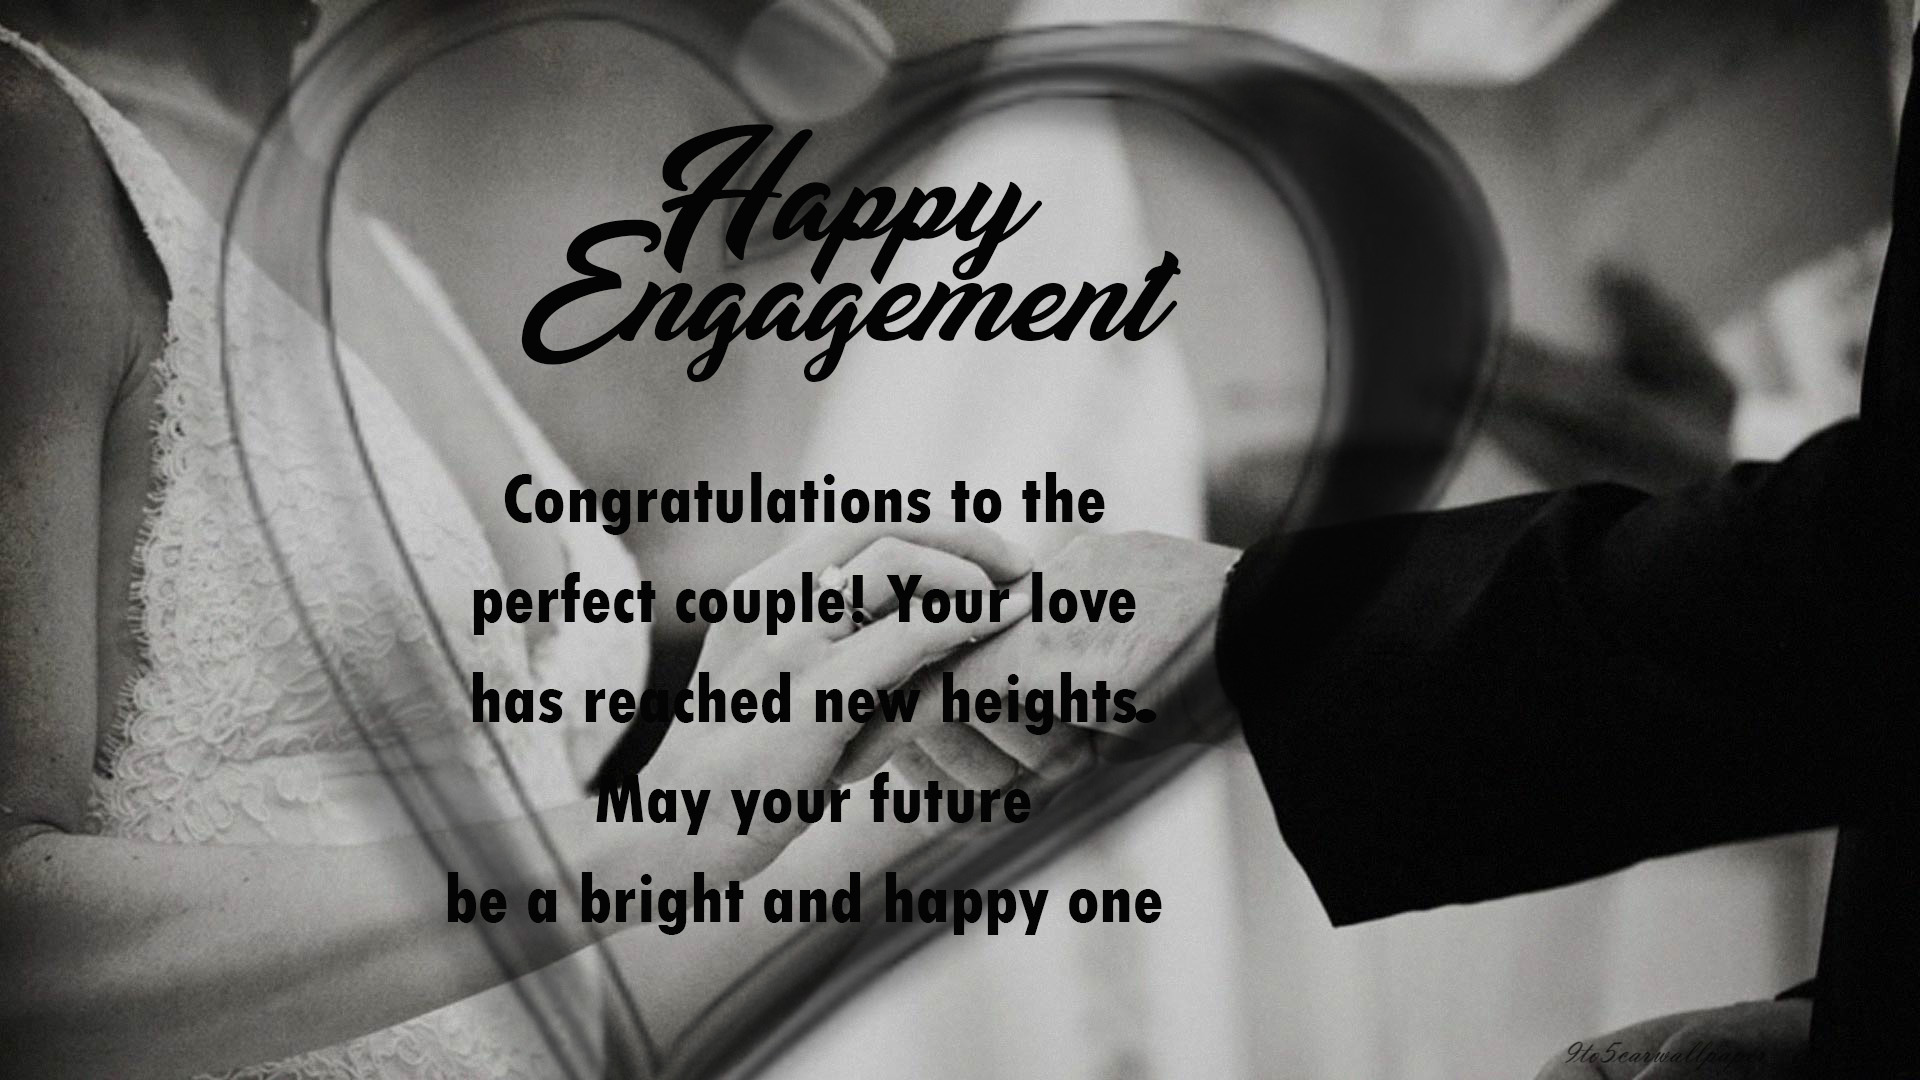 Happy Engagement | Congratulations on Engagement - My Site